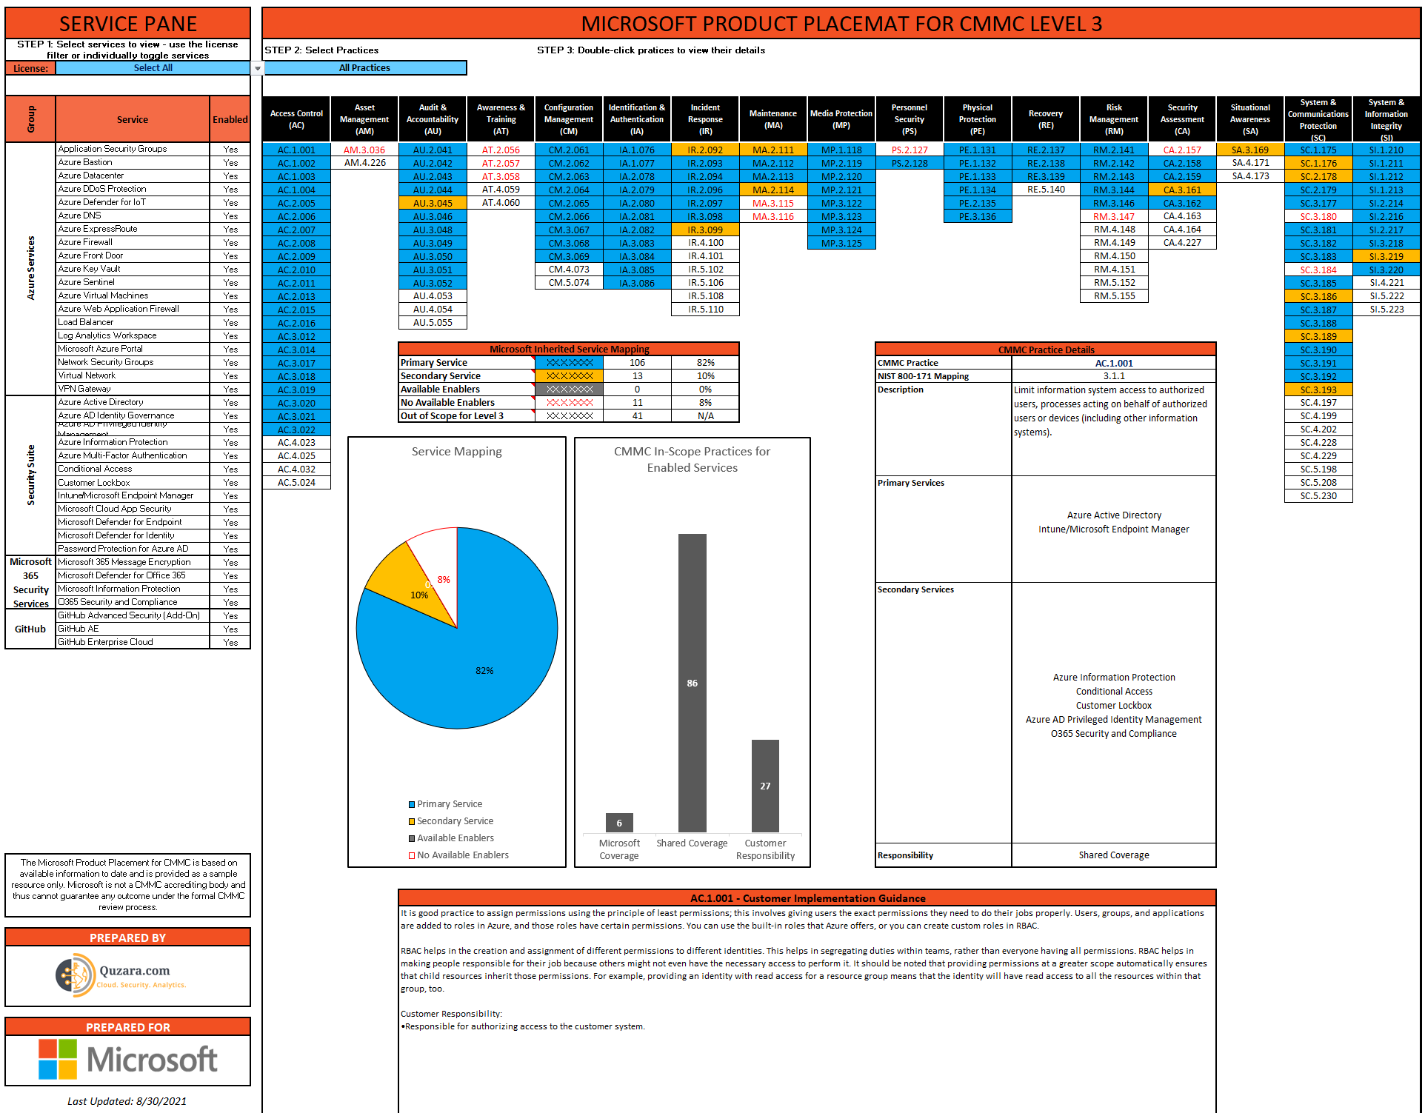 Microsoft Product Placemat for CMMC